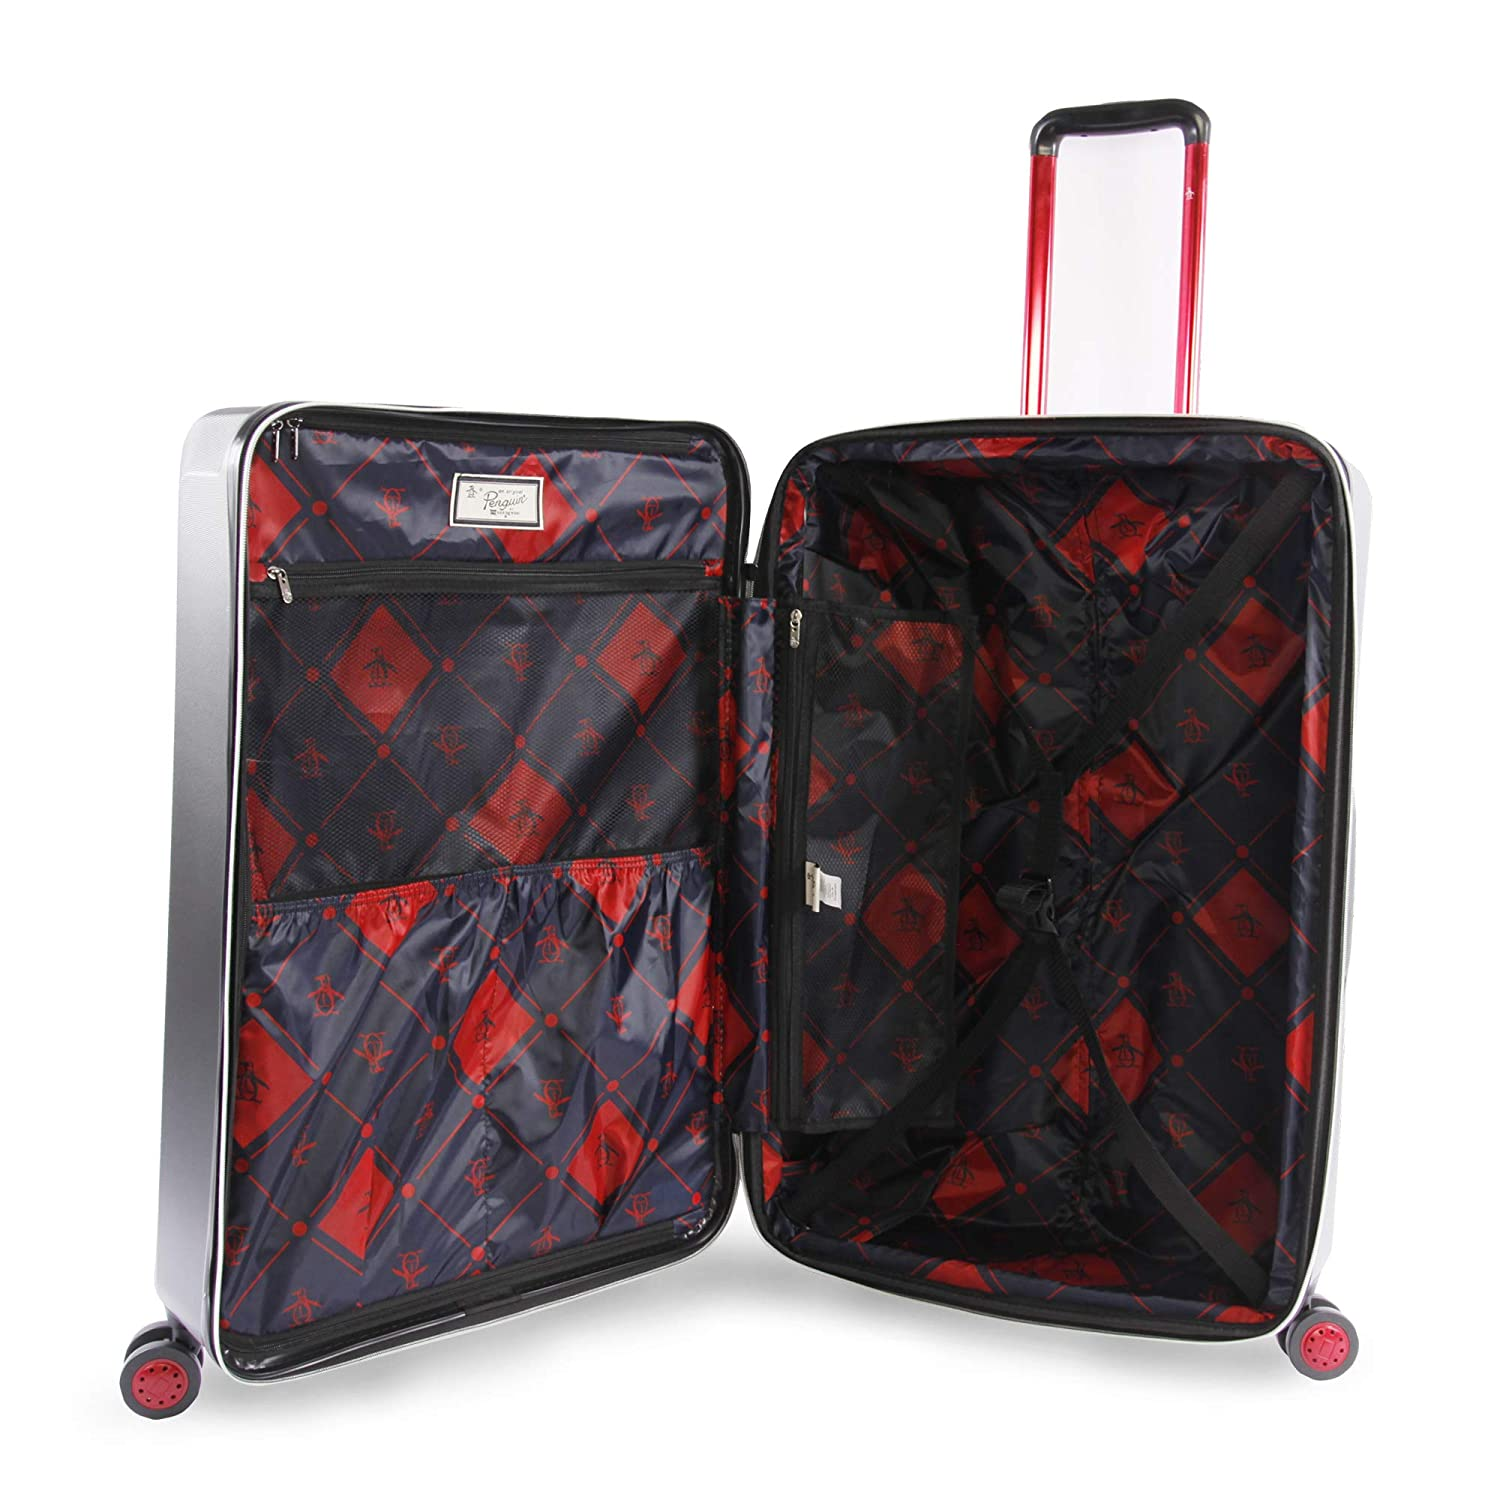 ORIGINAL PENGUIN Mens 2 Piece Hardside 8 Wheel Spinner Expandable Luggage Set Navy Original Penguin Luggage PG-ABS-1300-2